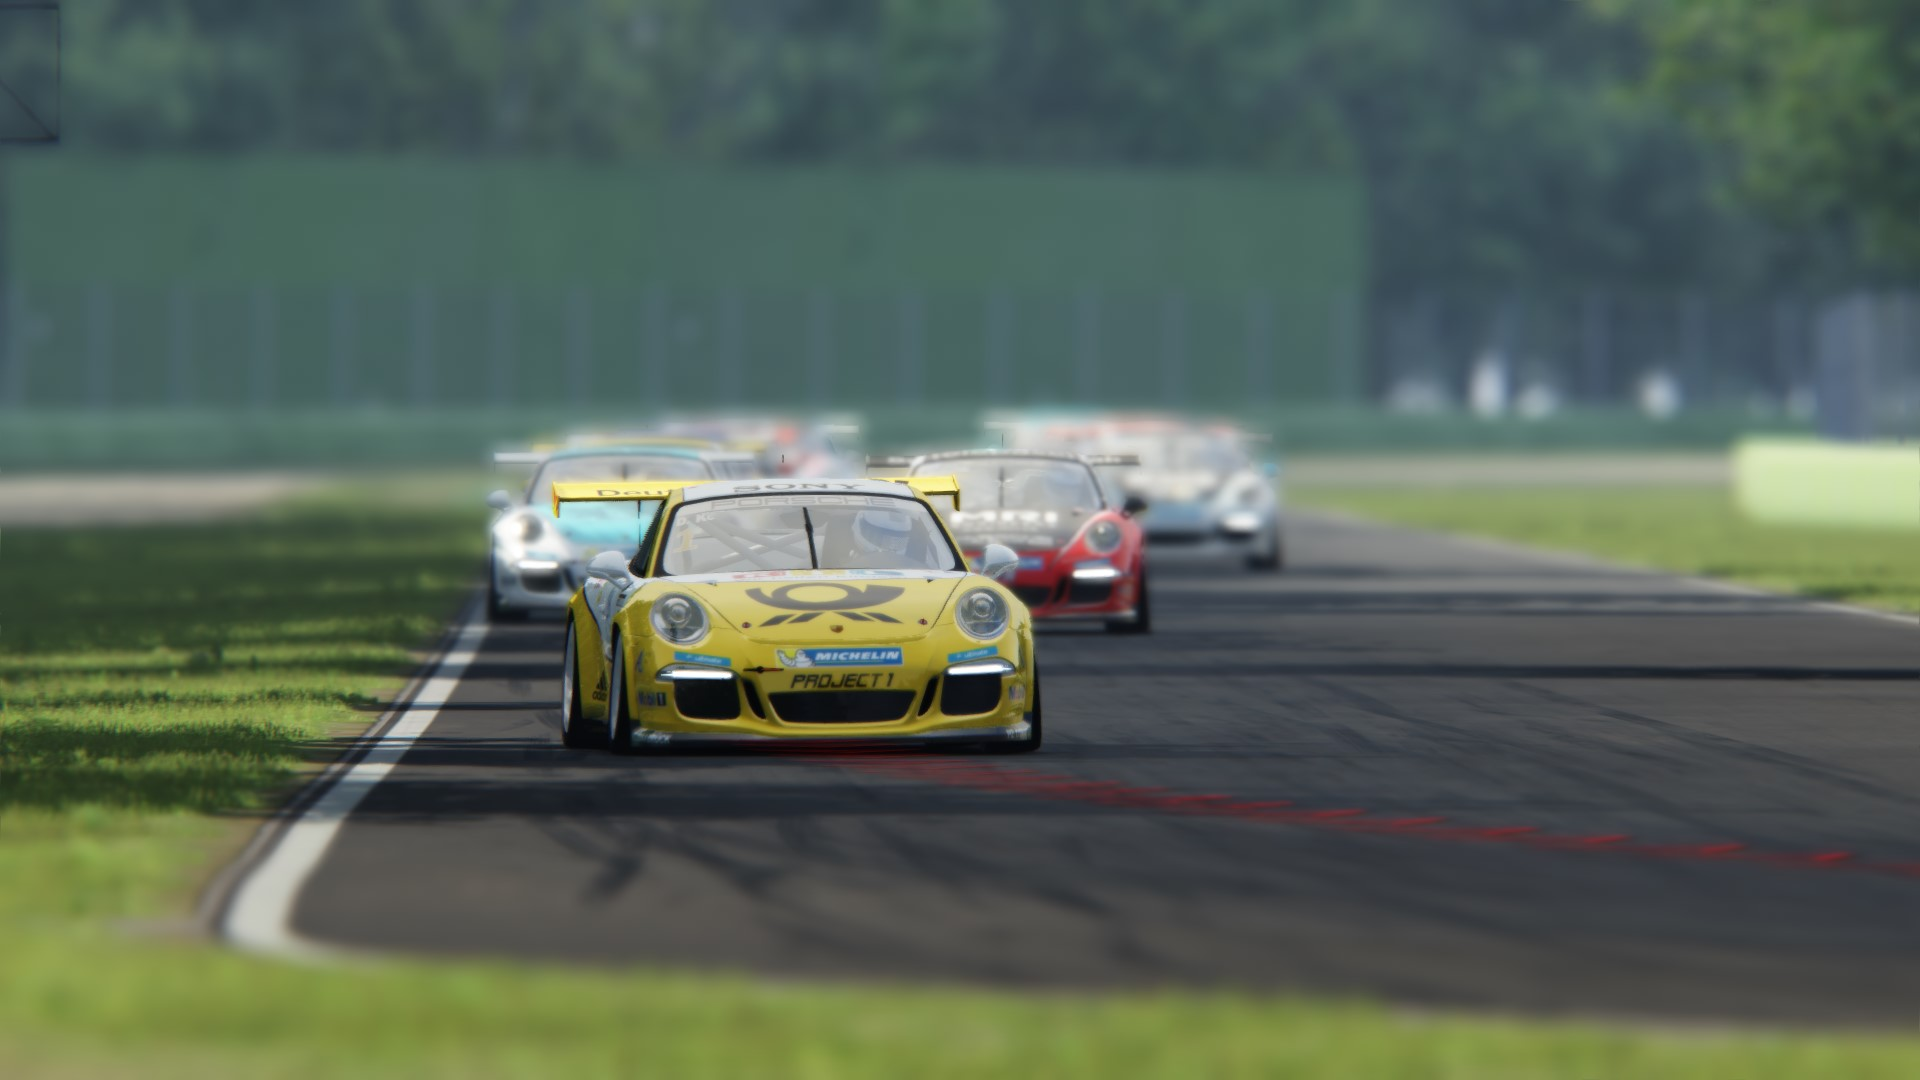 Screenshot_2013gt3cup_imola_27-4-116-19-42-42.jpg